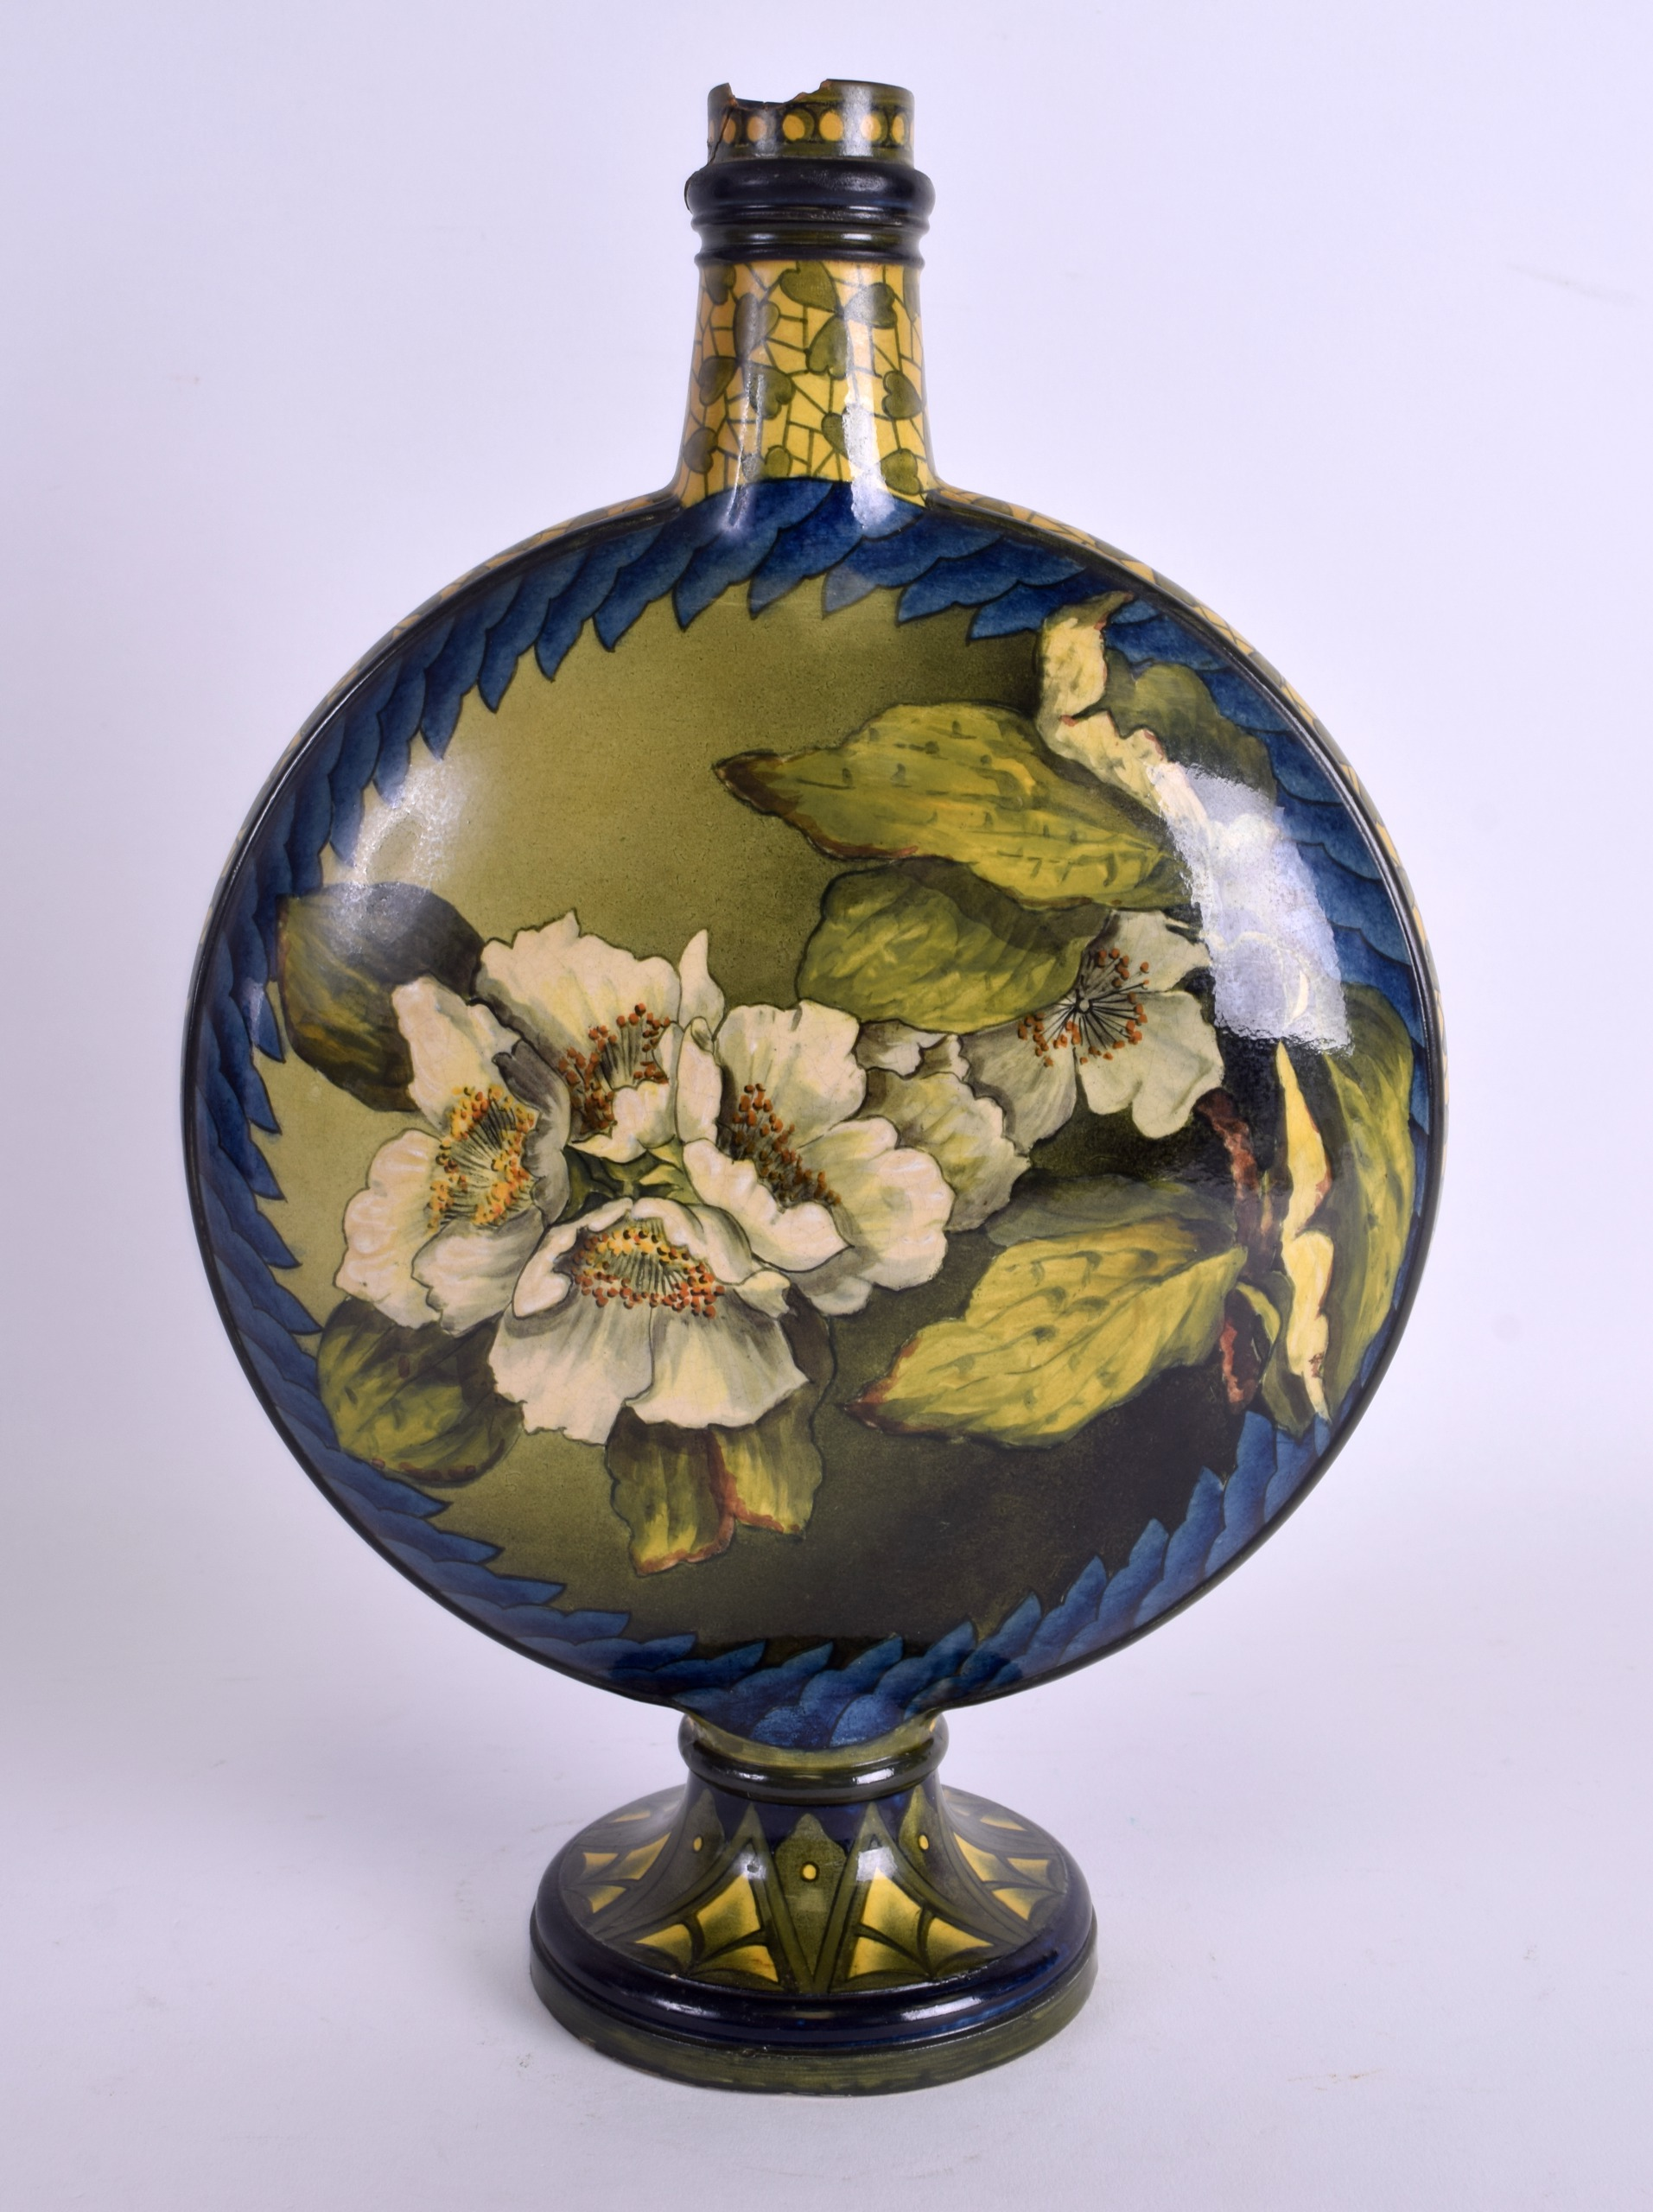 Lot 79 - AN ARTS AND CRAFTS ROYAL DOULTON MOON FLASK painted with floral sprays. 28 cm x 18 cm.